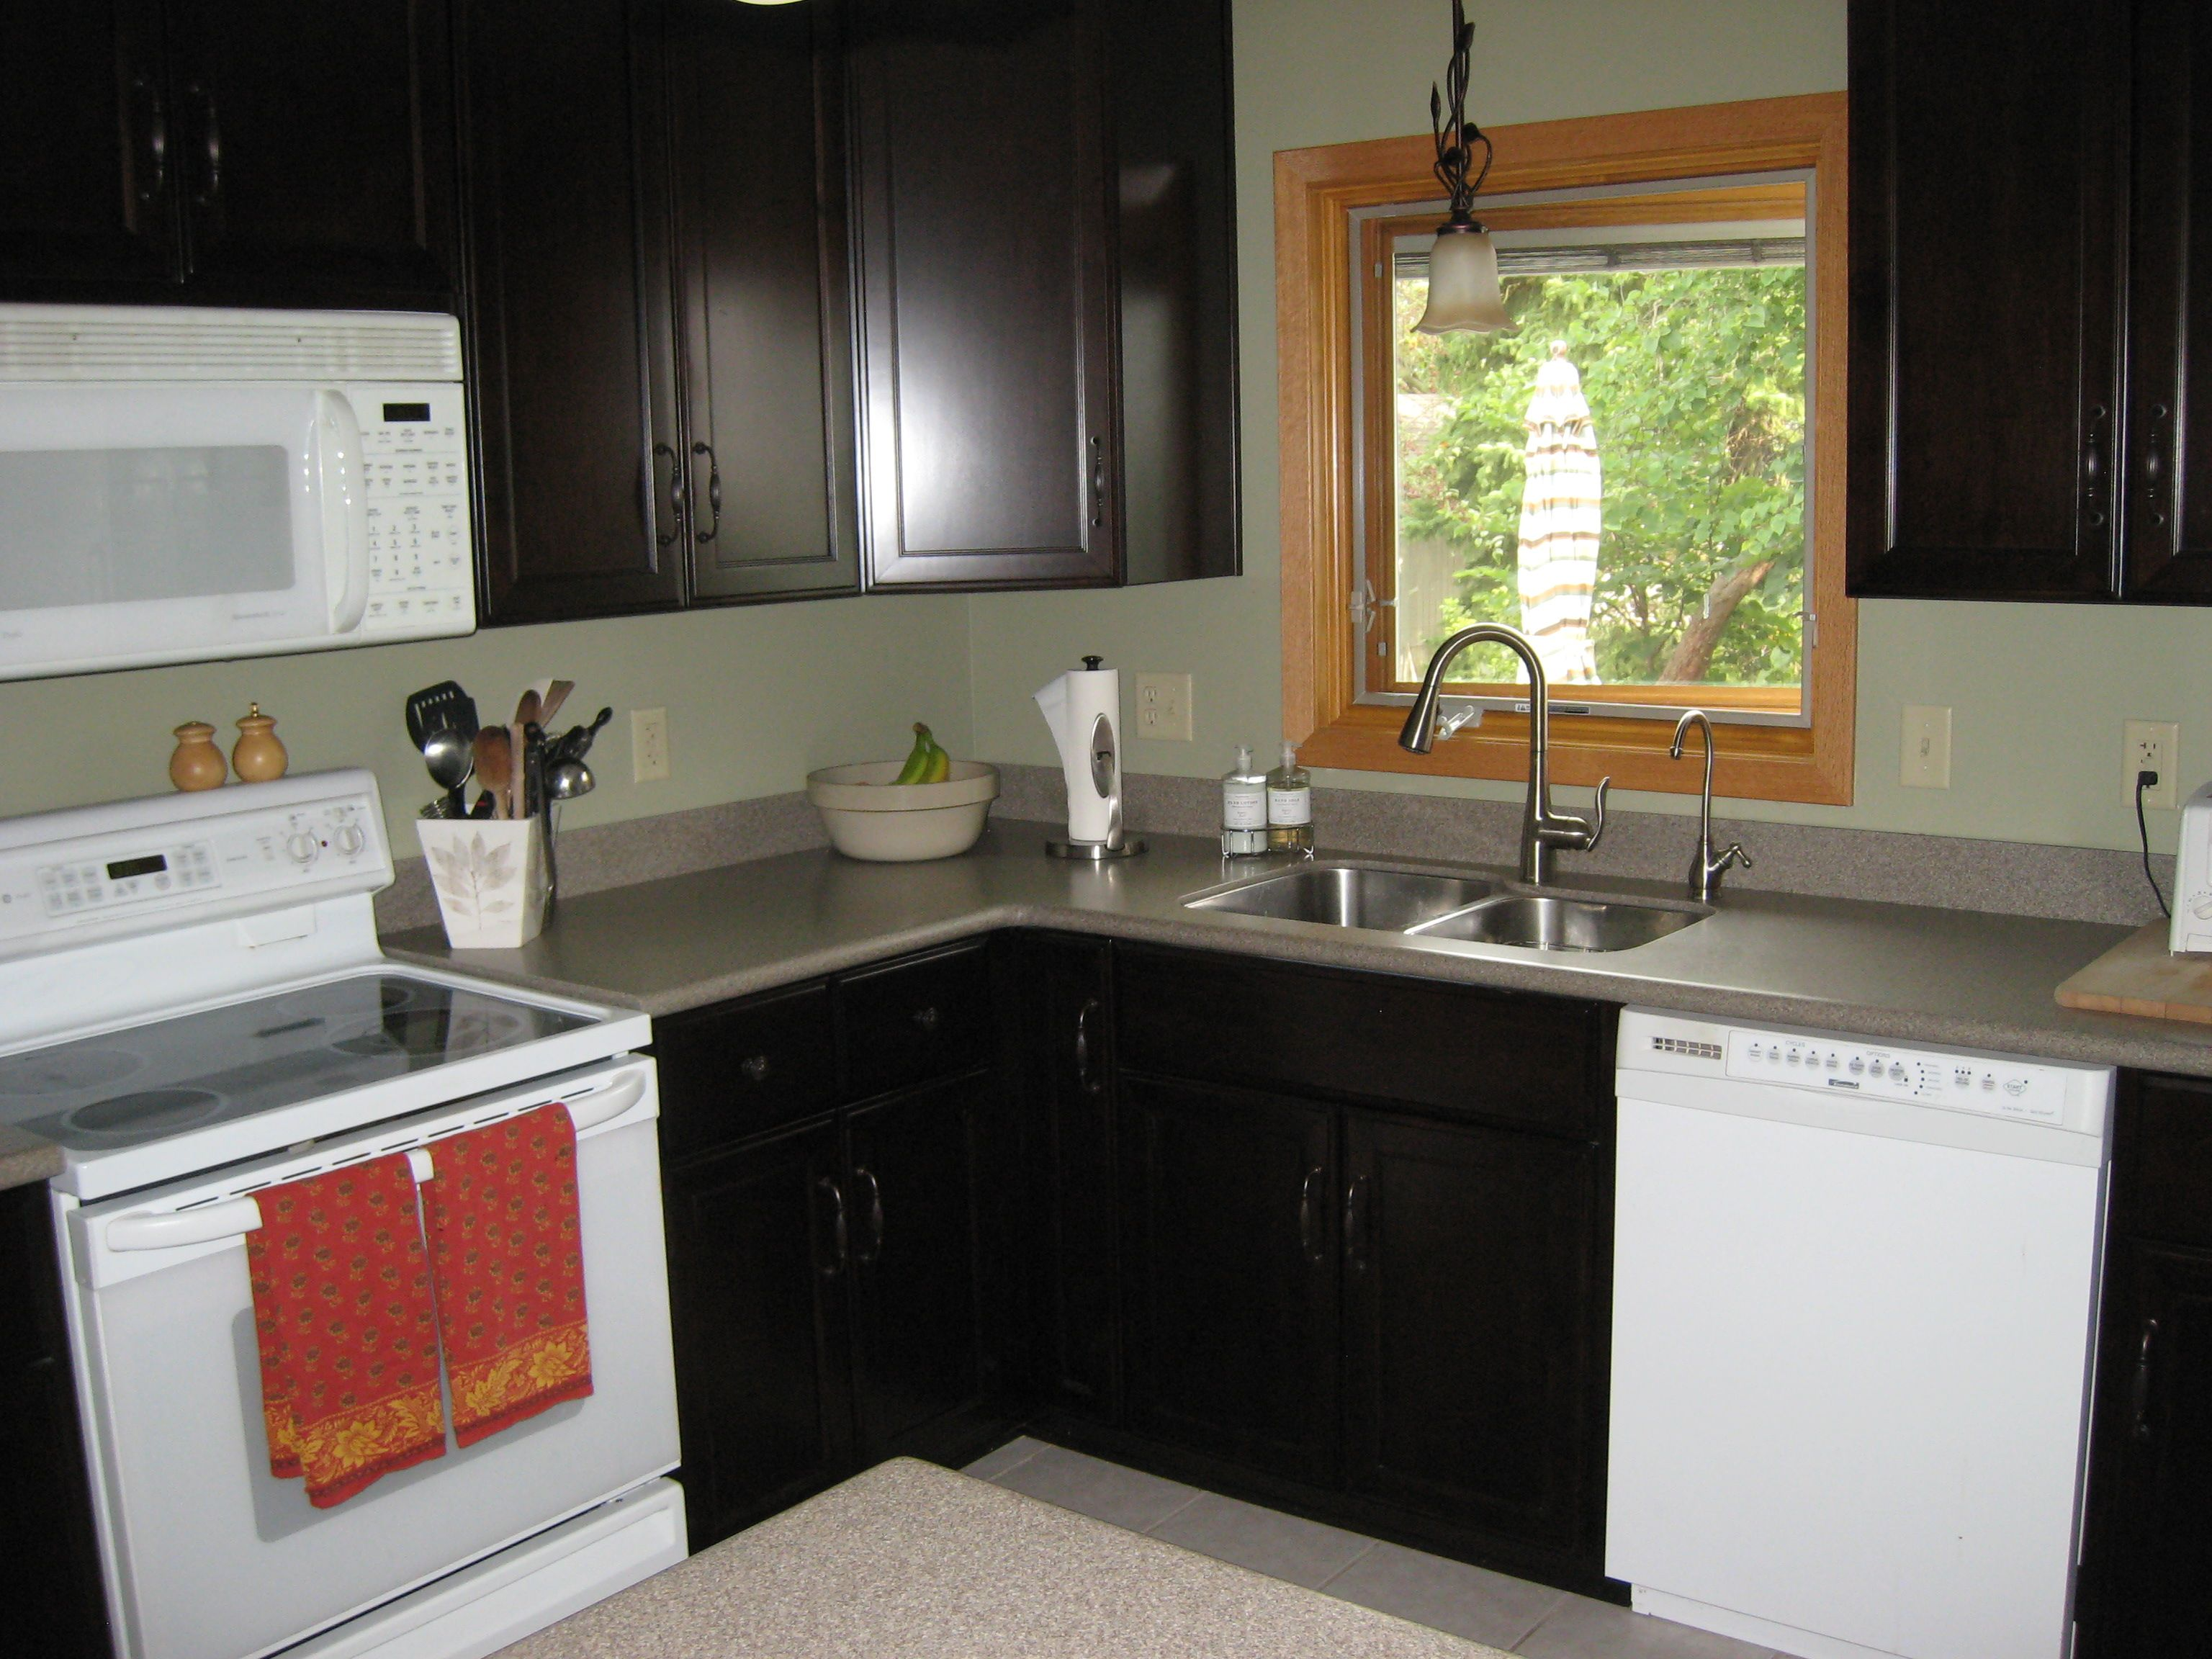 L Shaped Kitchen Design Of Small L Shaped Kitchen Like Yours With Dark Cabinets And